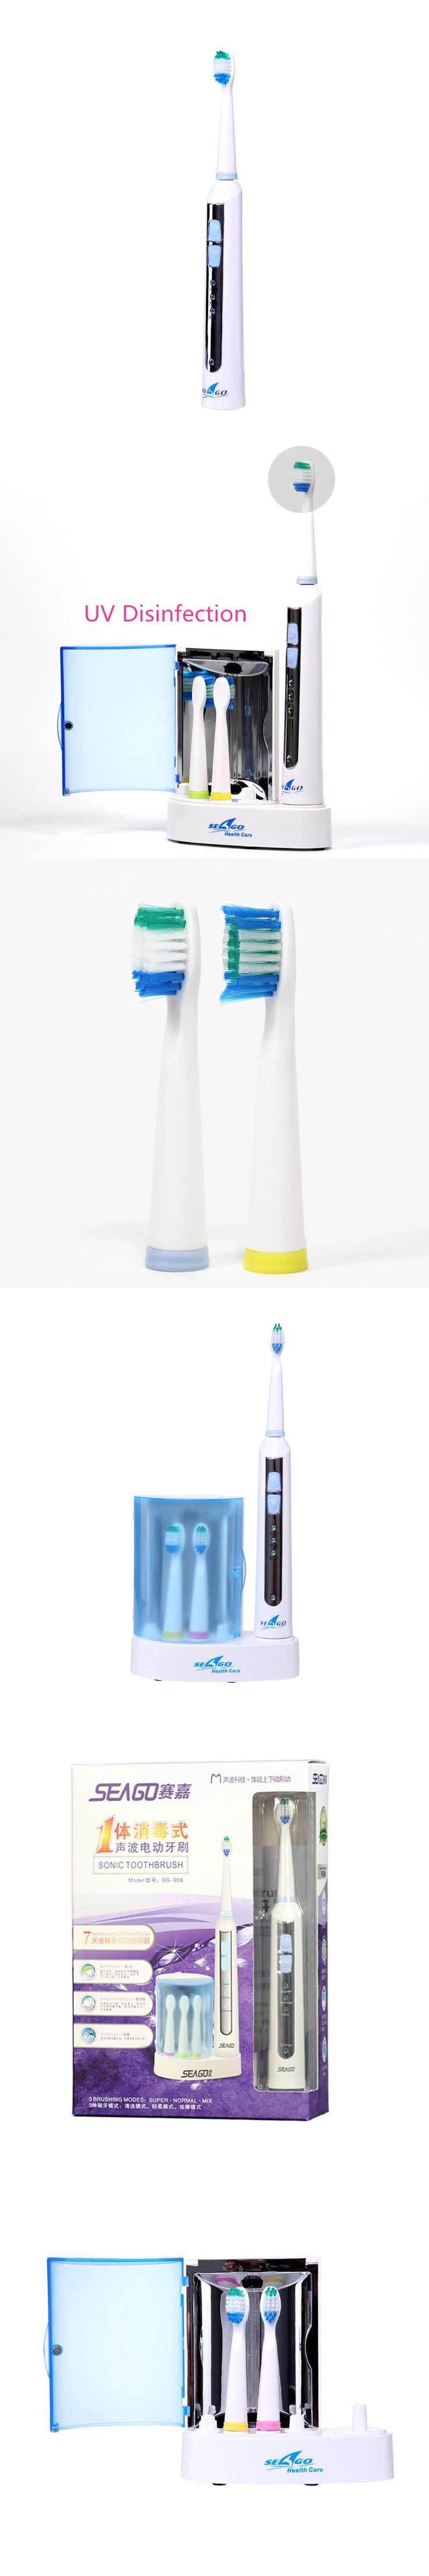 Rechargable Sonic Electric Toothbrush for Adults 4 brush heads Uv sterilizer Waterproof IP7 220V-240V Seago SG-908